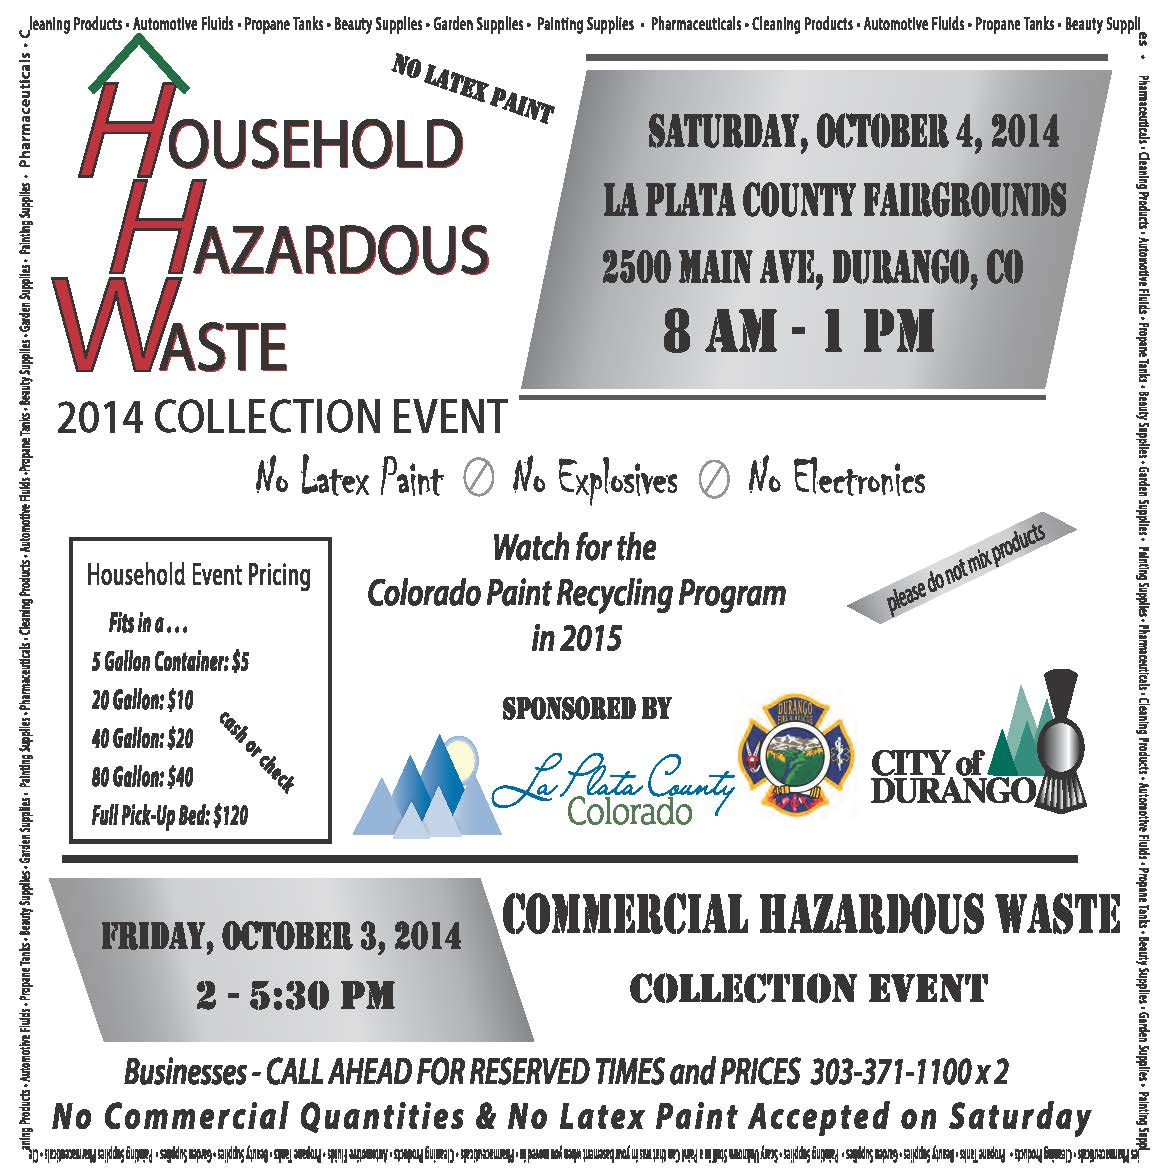 Household waste can be brought to La Plata County Fairgrounds October 11th 8am to 1pm